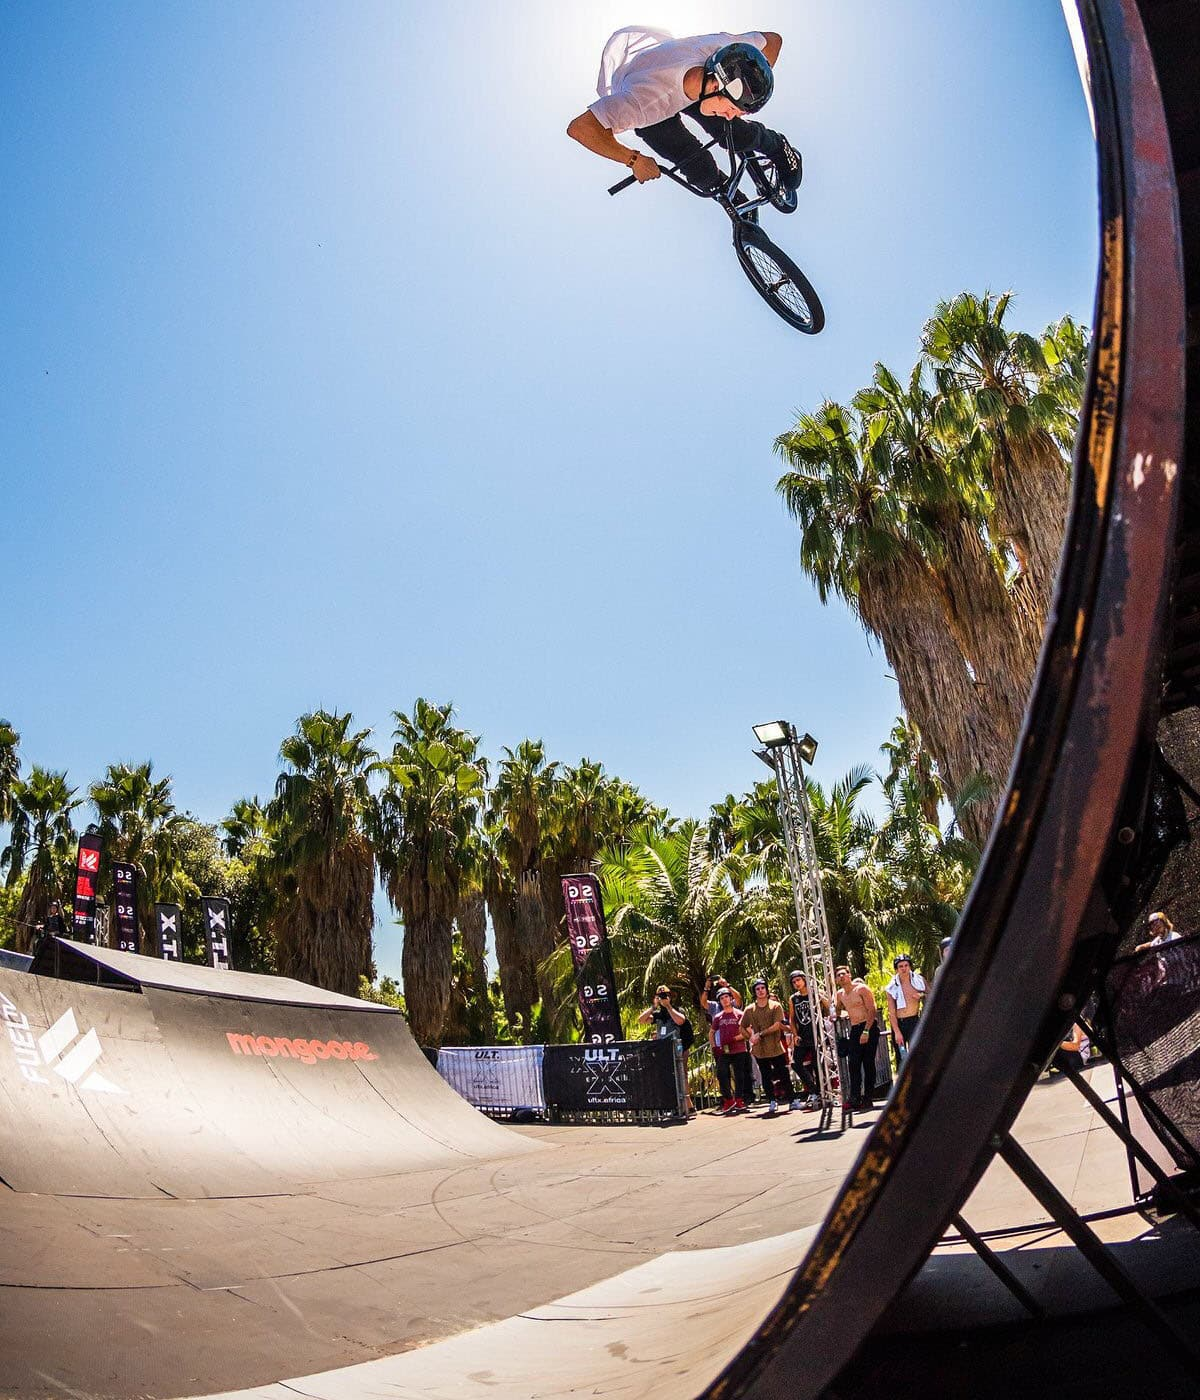 BMX is growing up fast, but we should still ride like we're kids